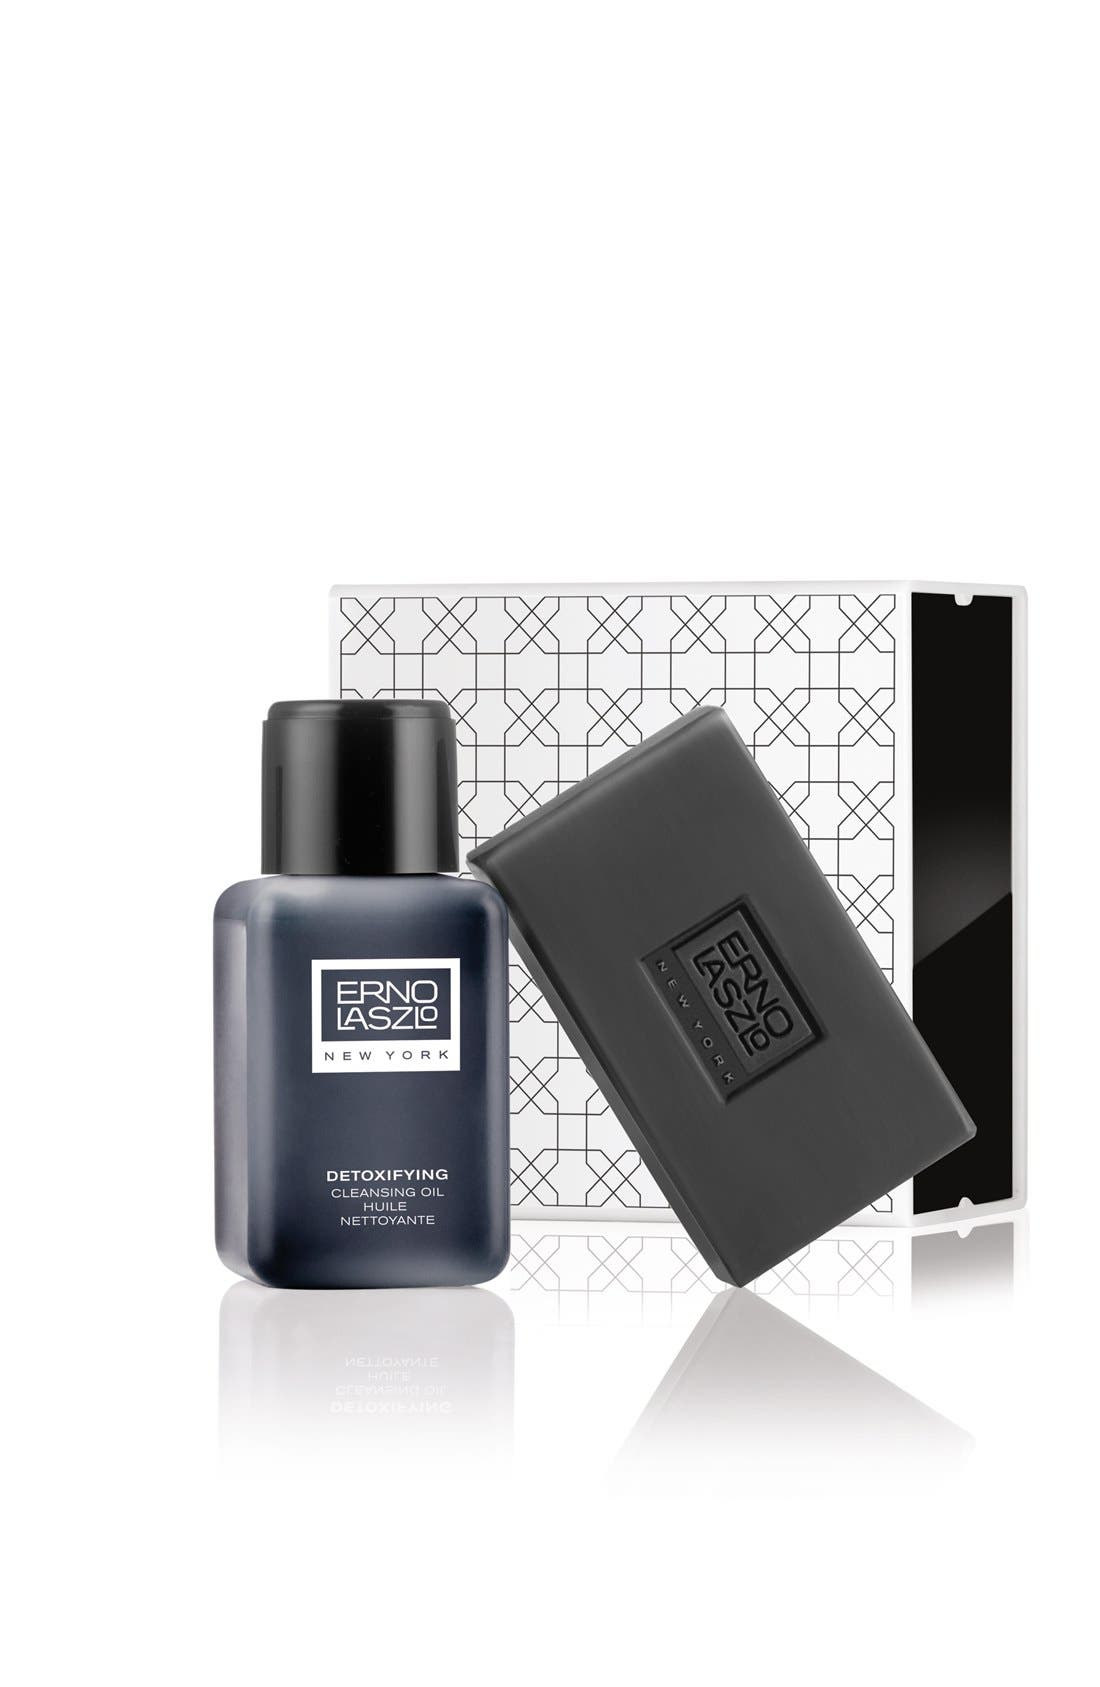 Erno Laszlo Detoxifying Cleansing Set ($38 Value)